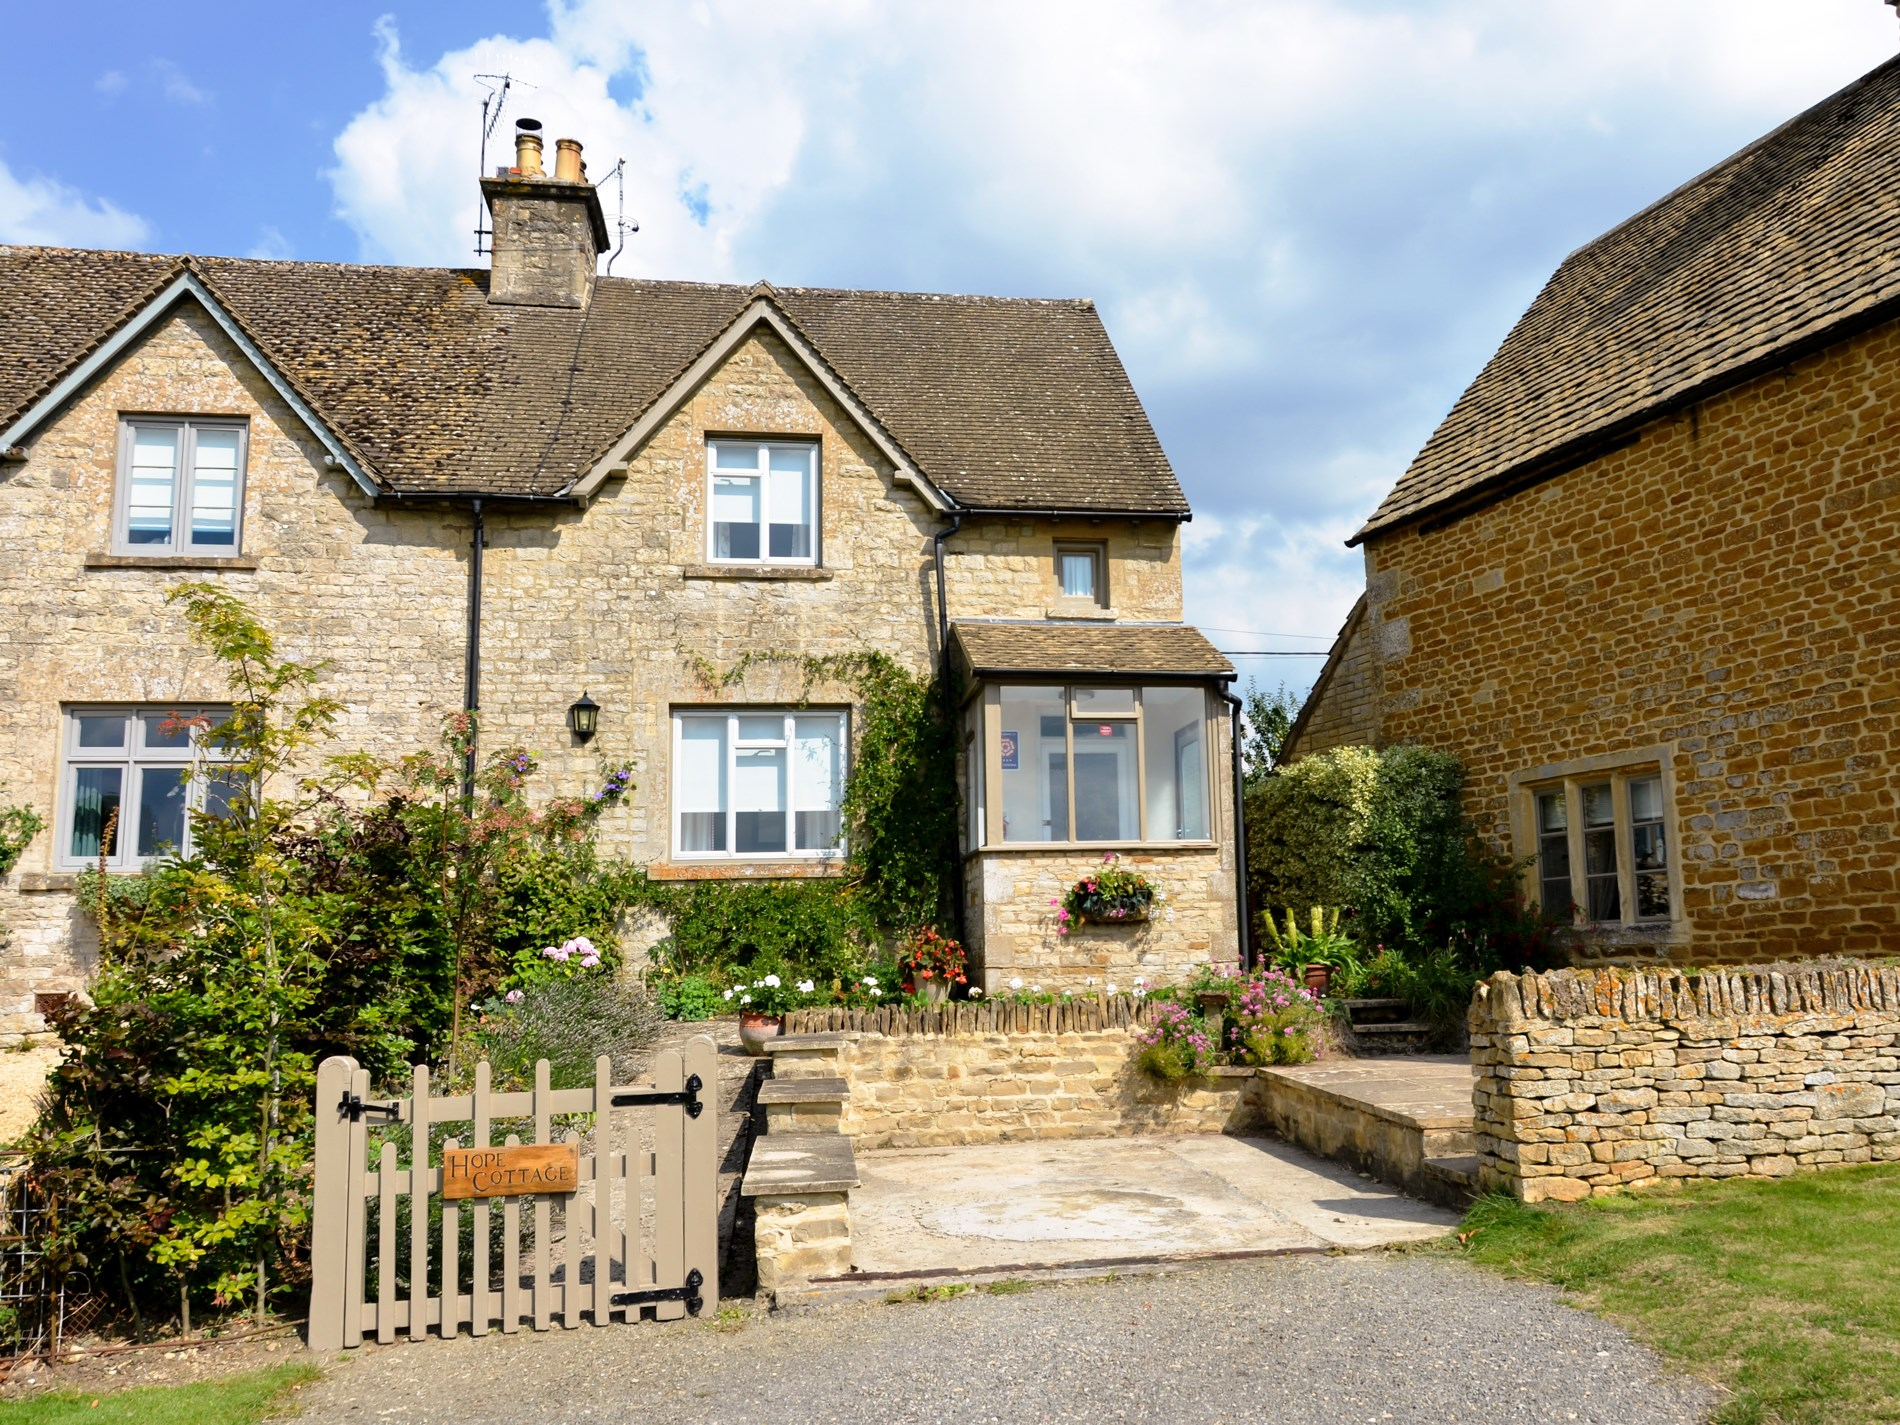 Ferienhaus in Stow-on-the-Wold